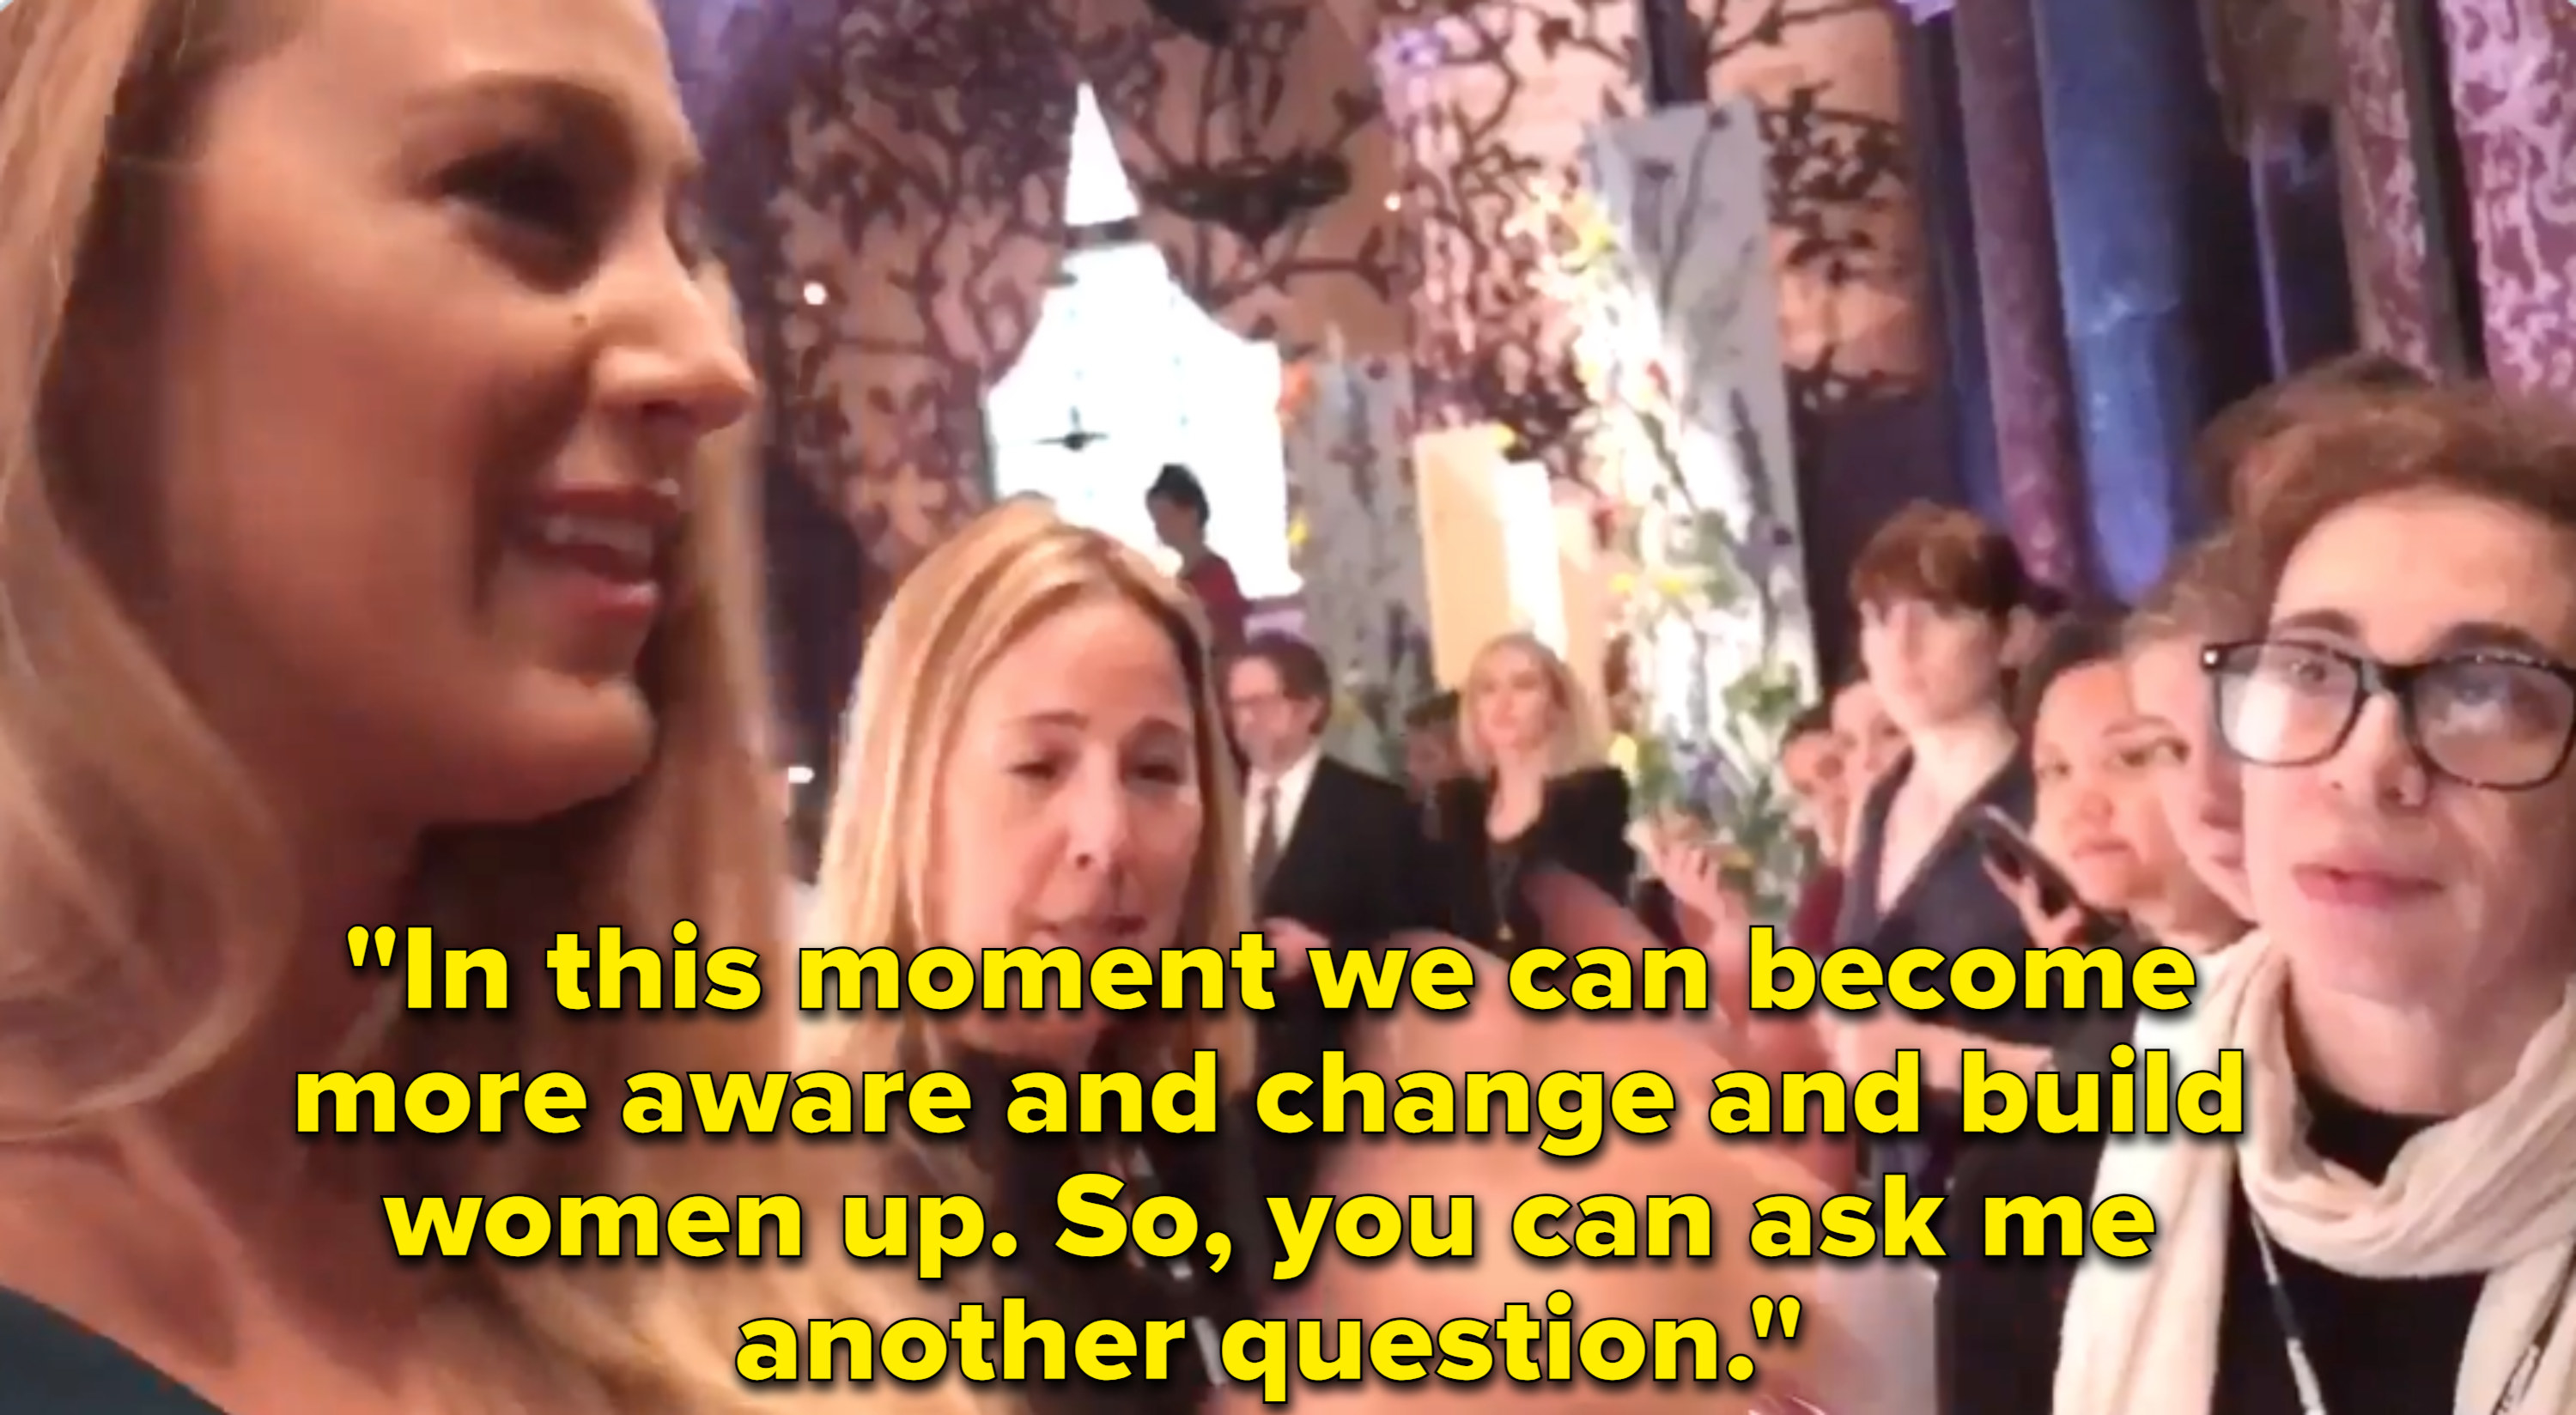 Blake Lively angrily speaks with reporters after being ask an inappropriate question.